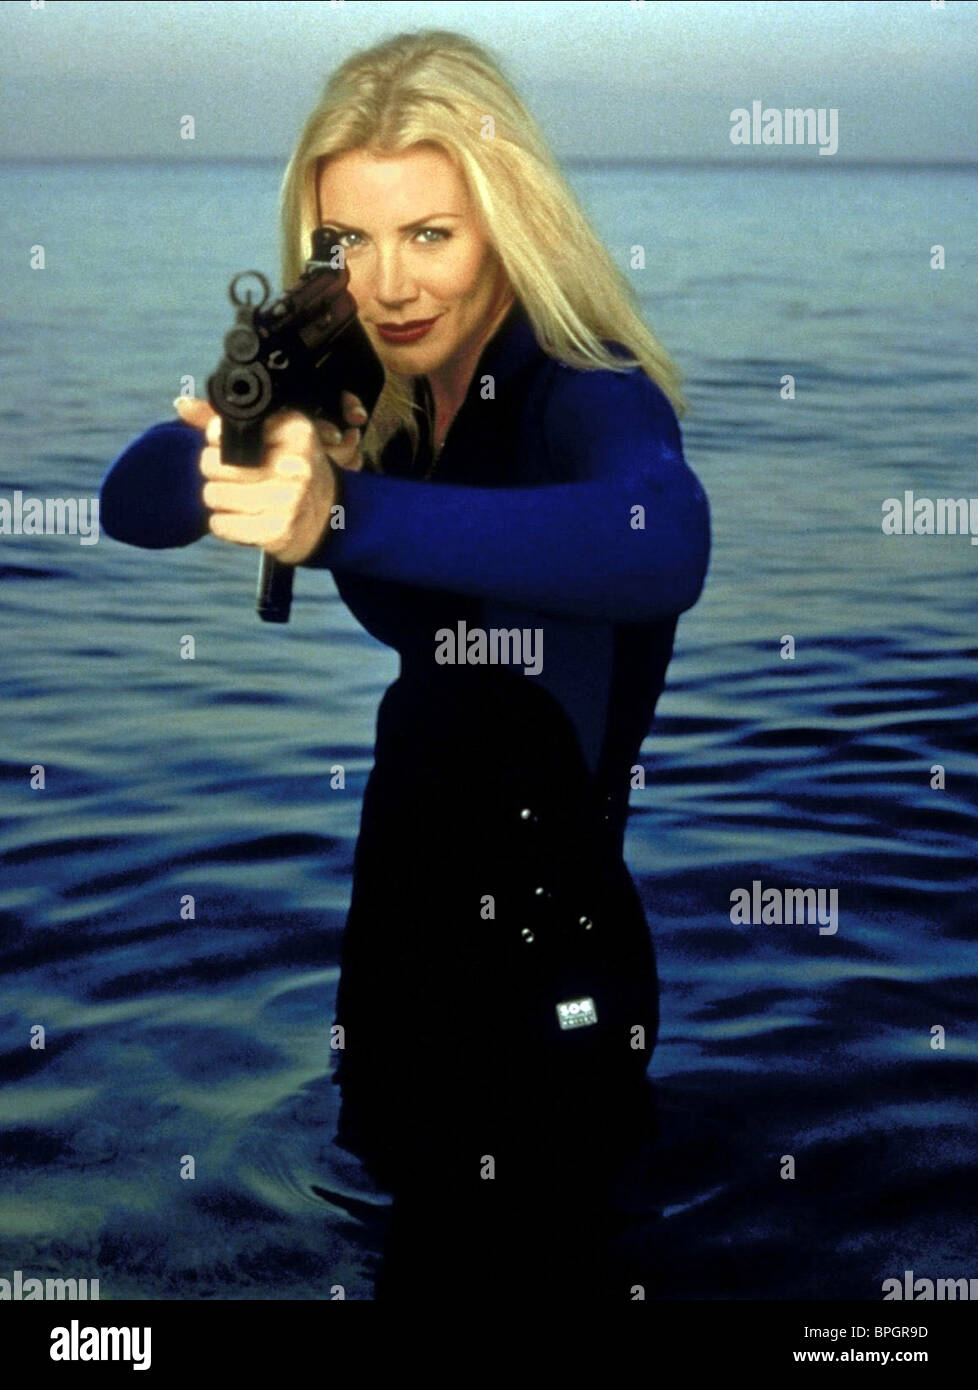 Shannon tweed possessed by the night part 2 - 1 1